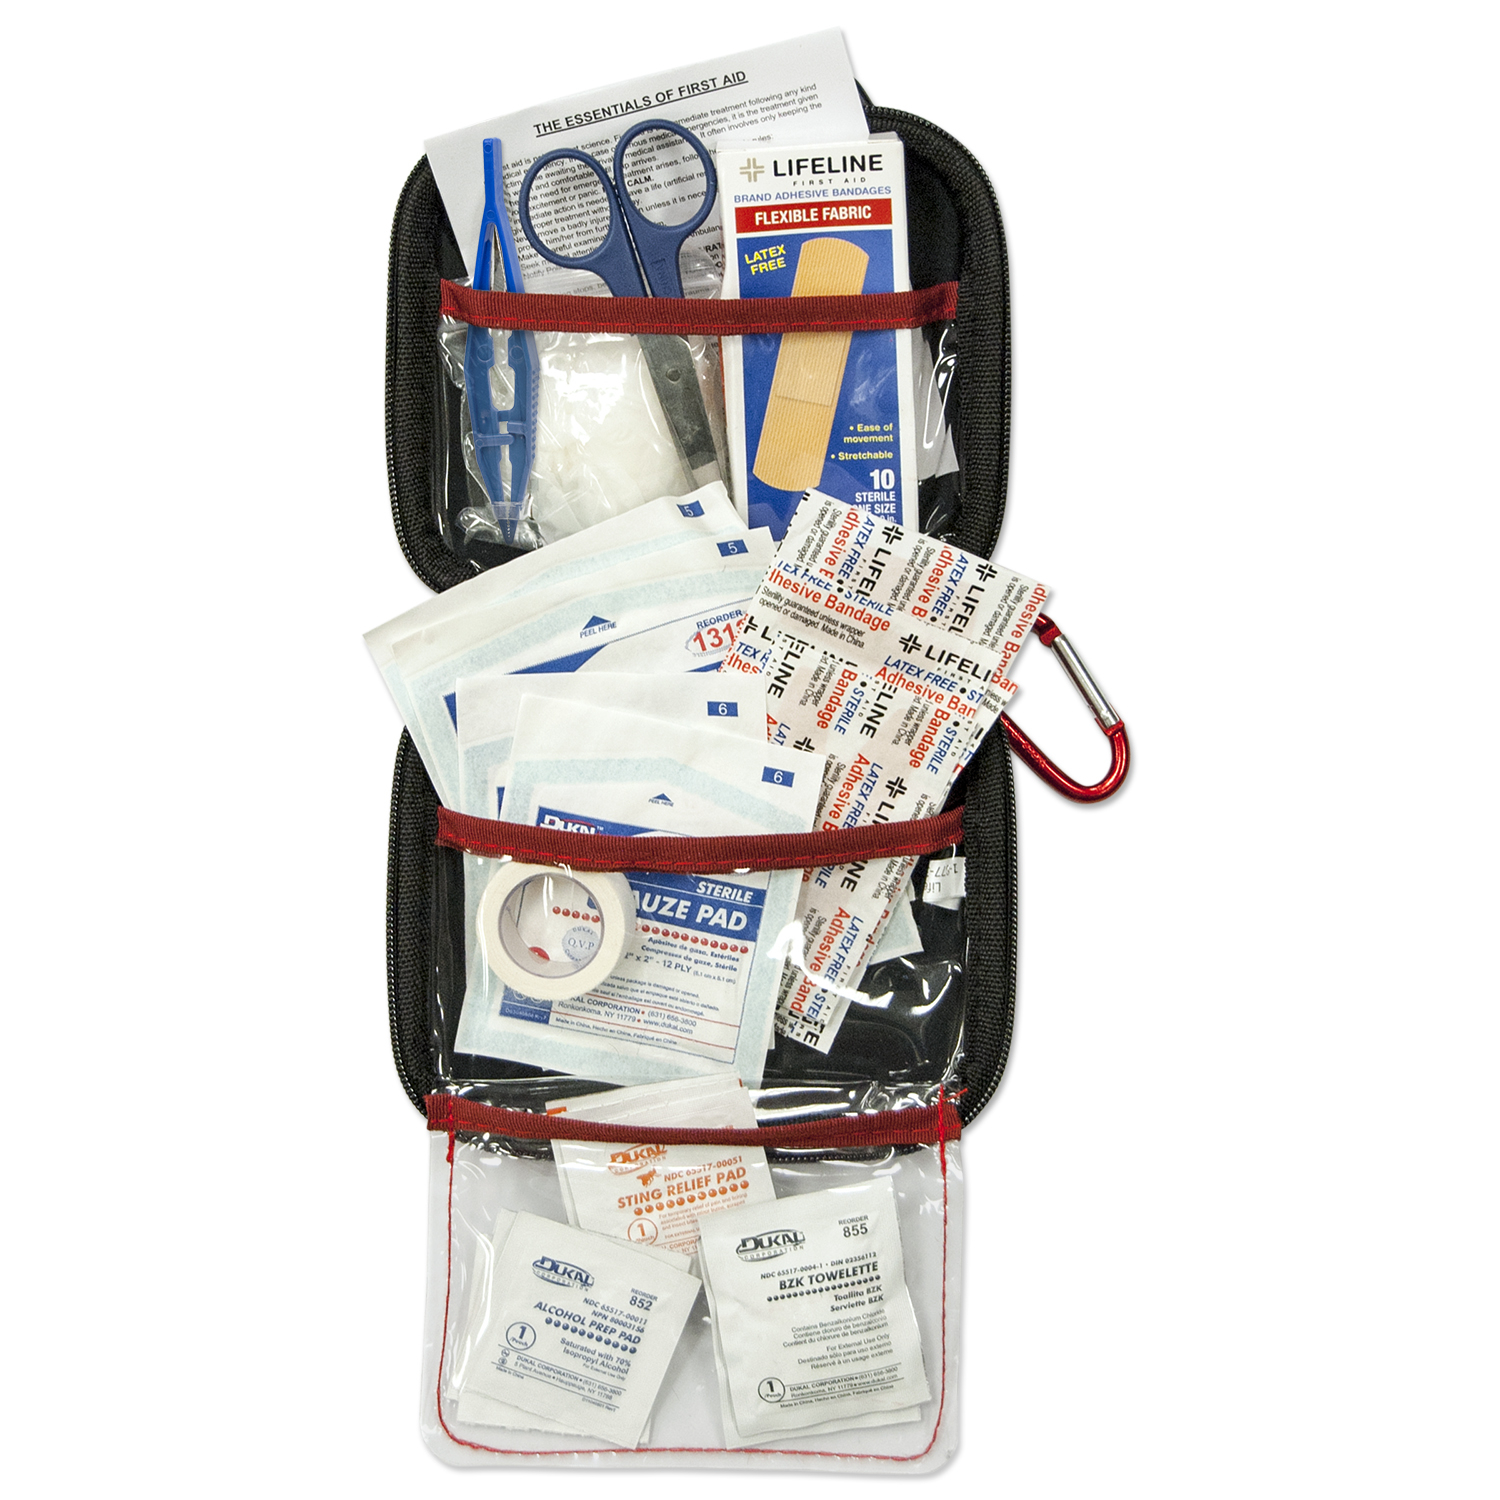 Lifeline EVA First Aid Kit, 53 Piece